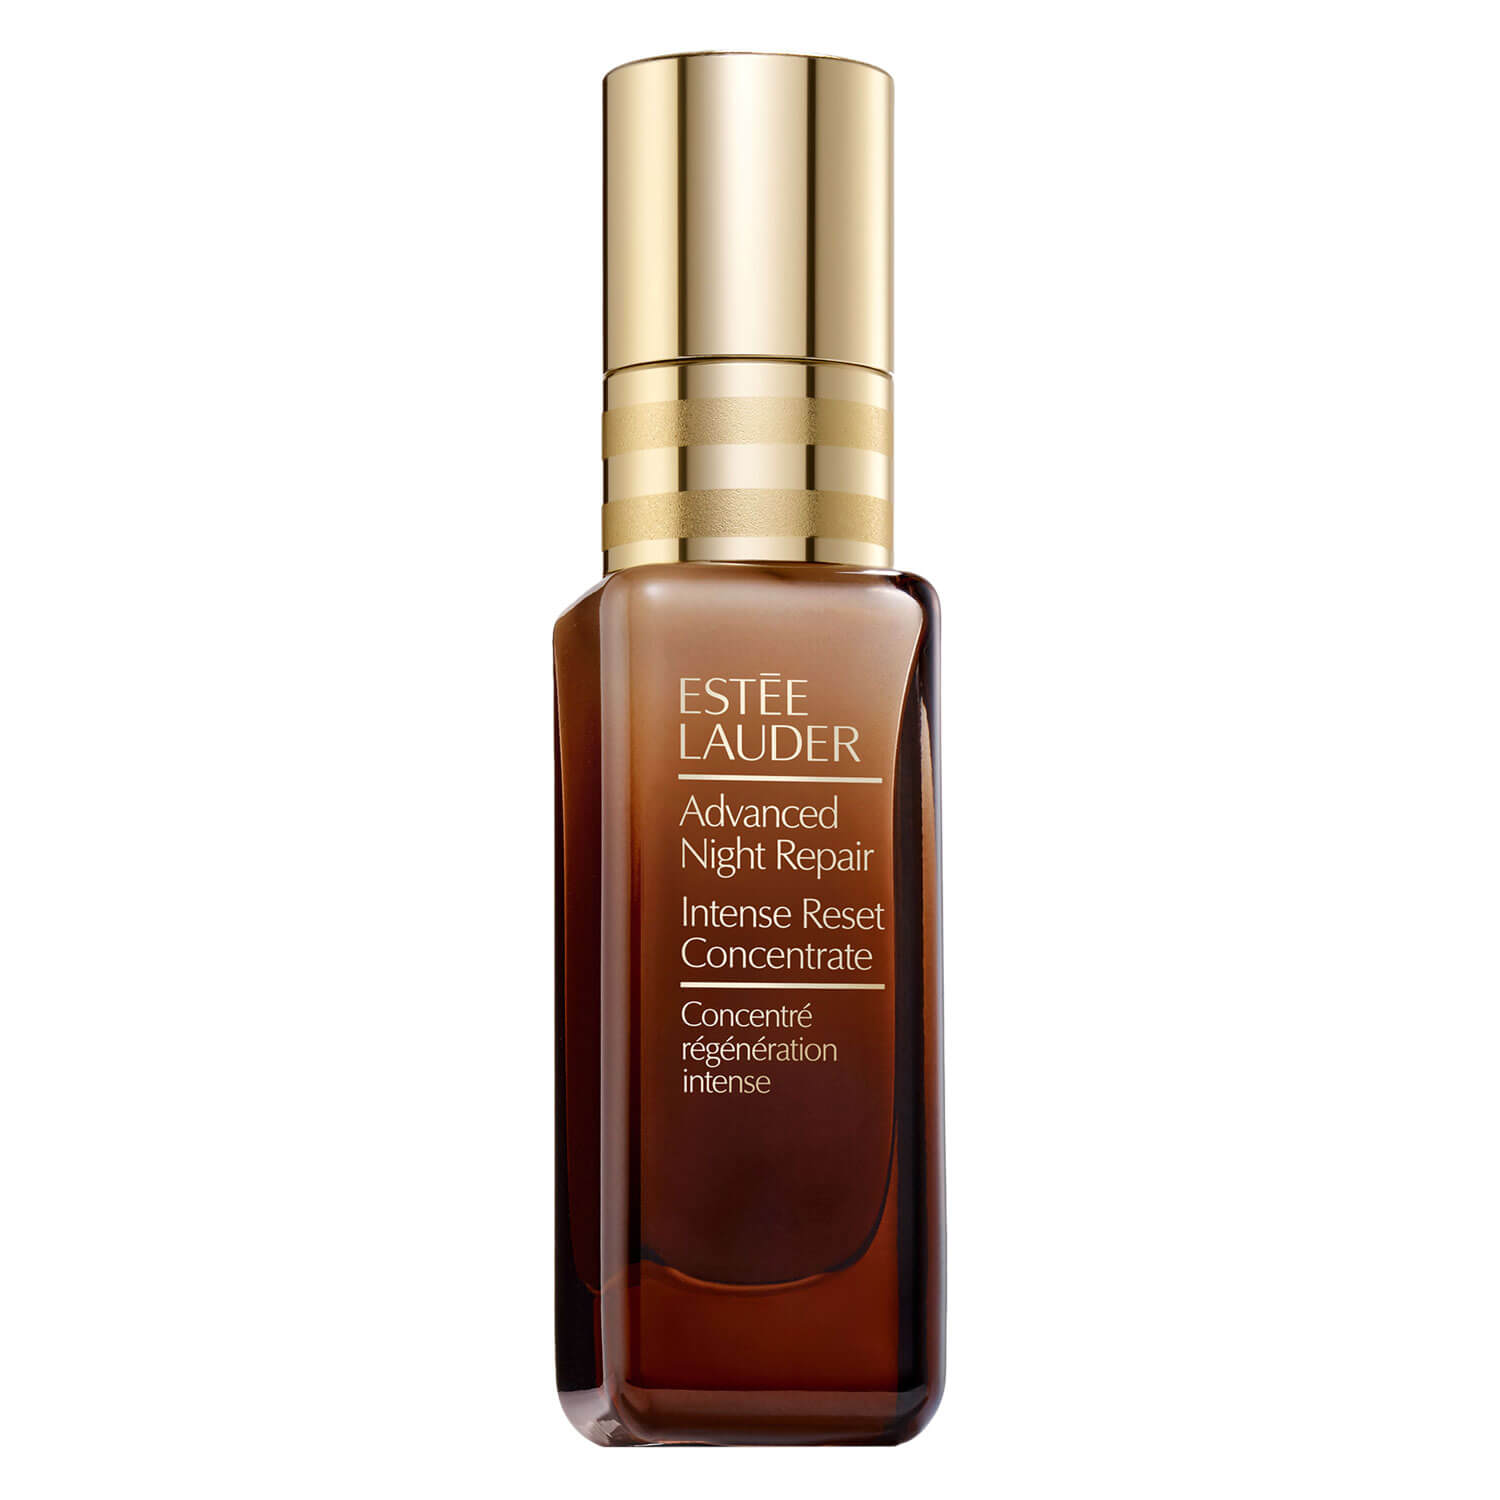 Advanced Night Repair - Intense Reset Concentrate